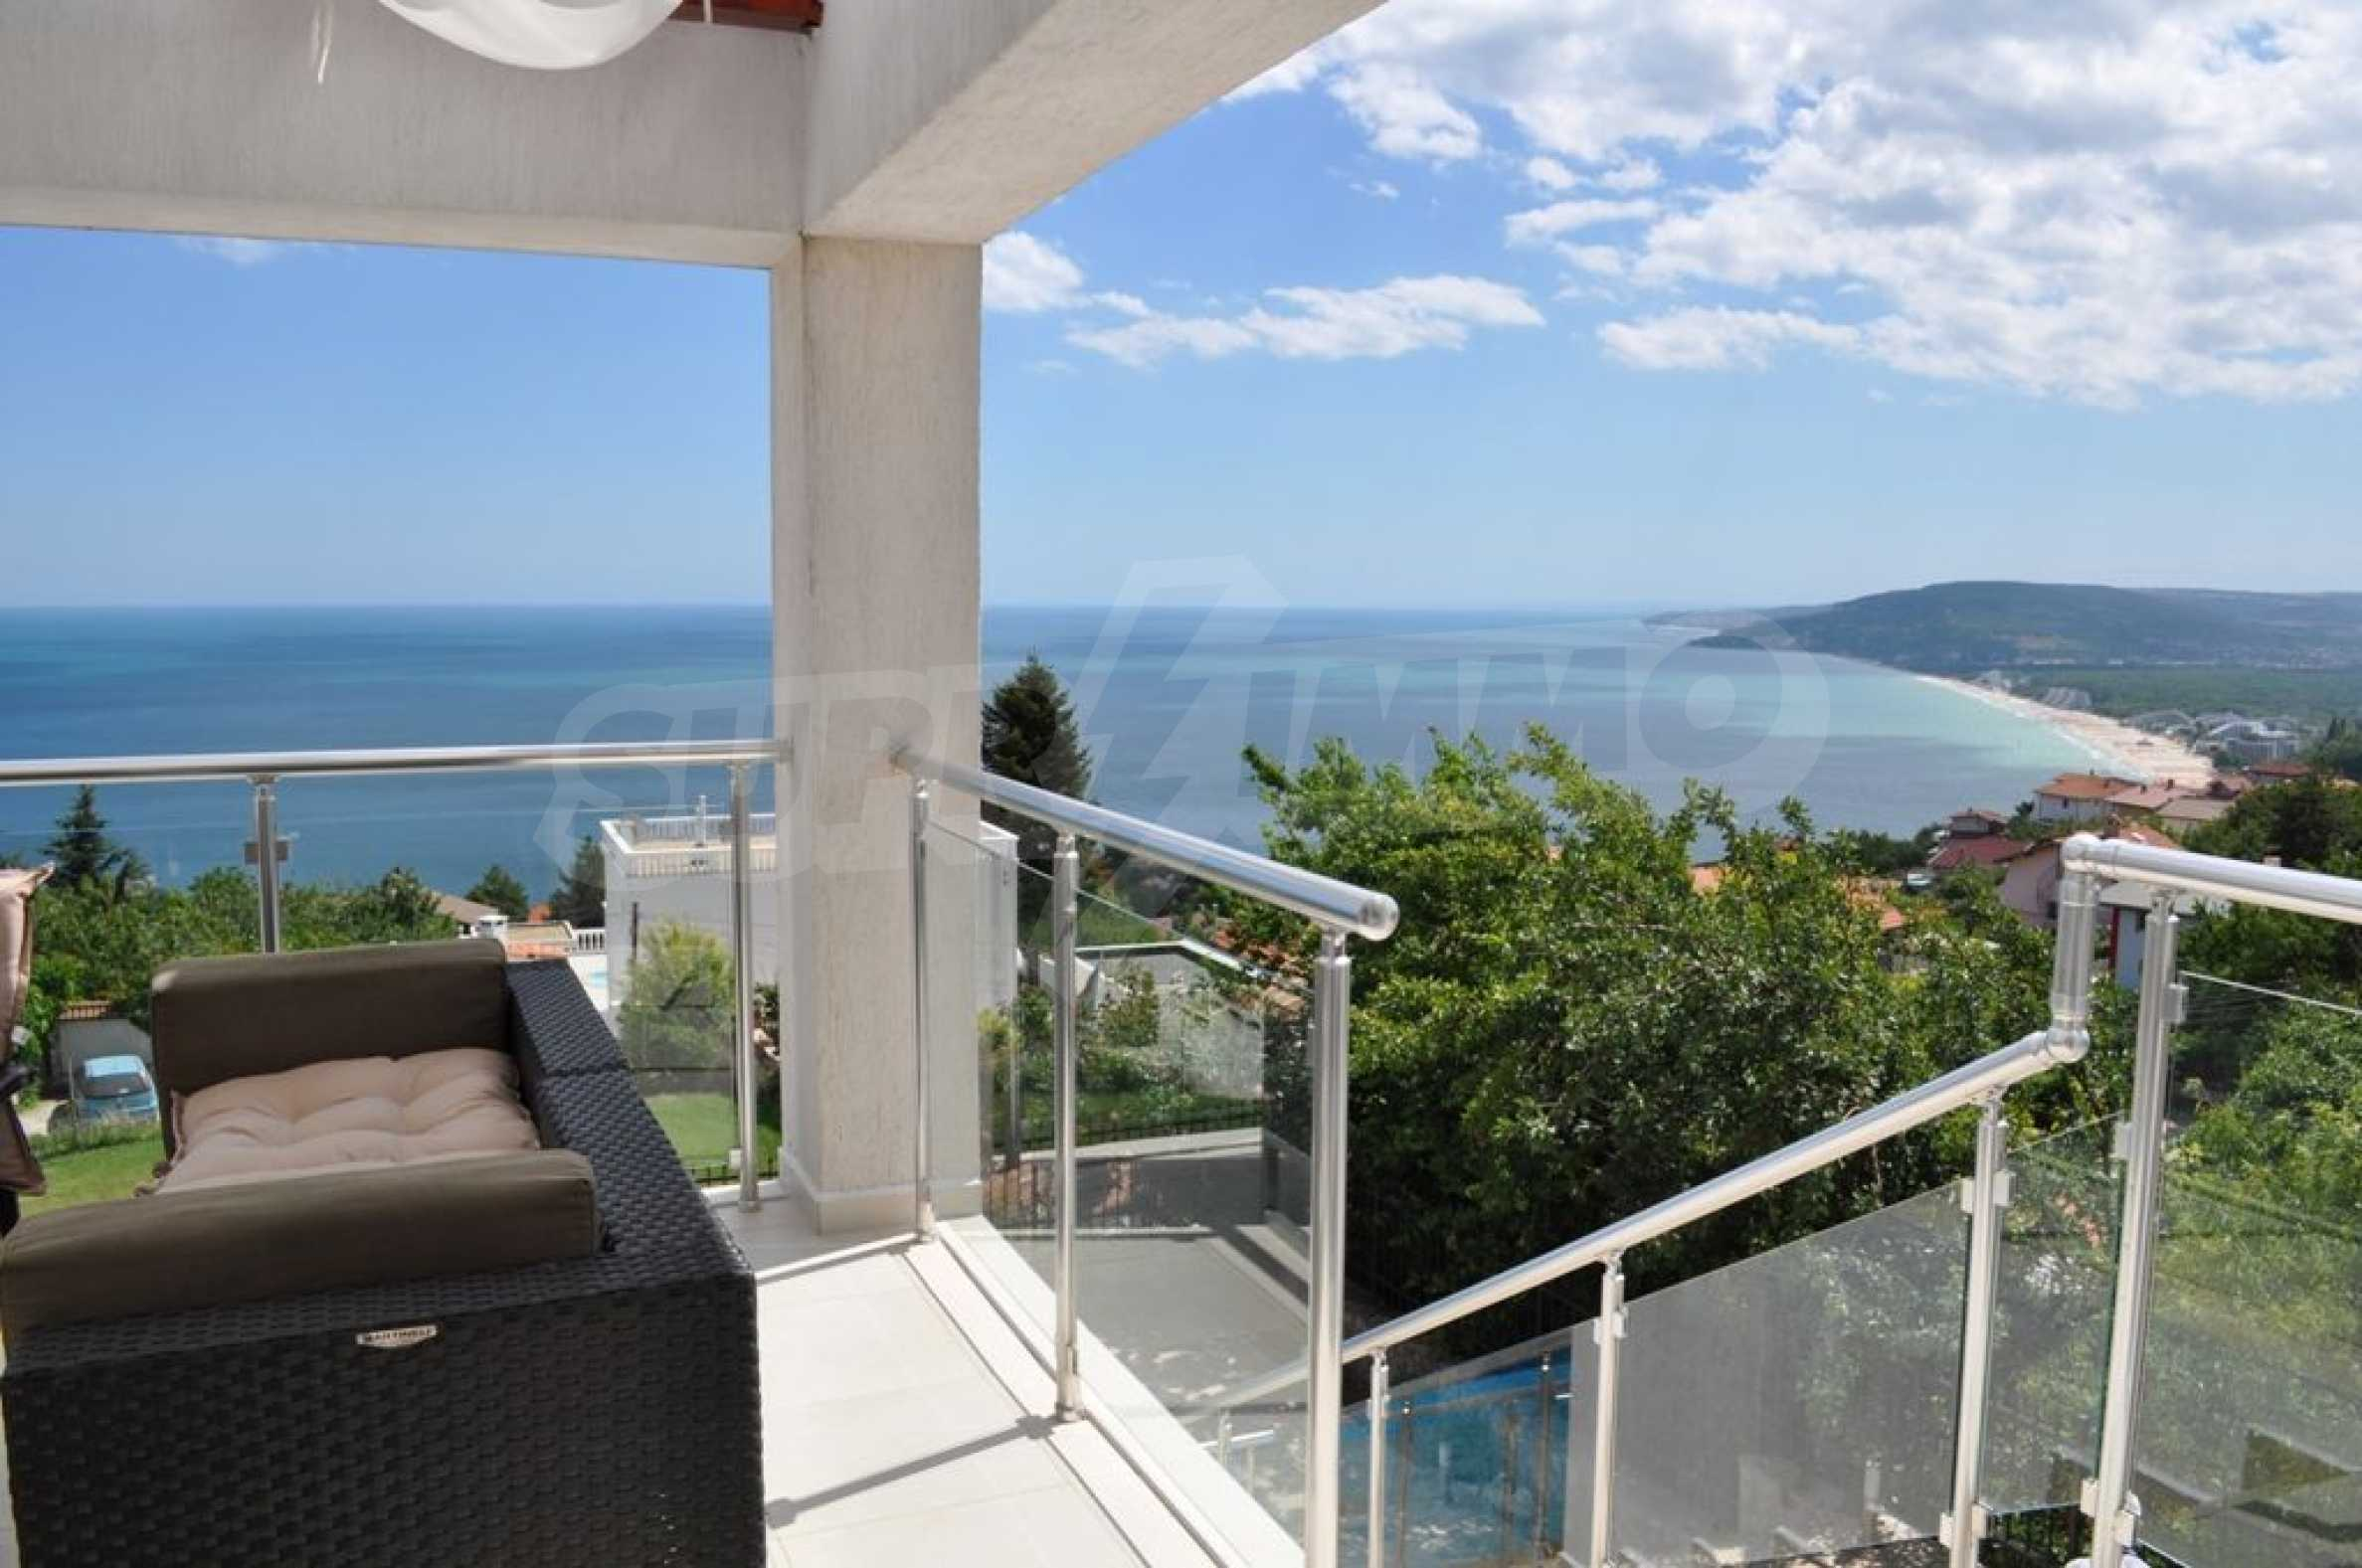 Luxury villa with 4 bedrooms for rent in Albena area  23